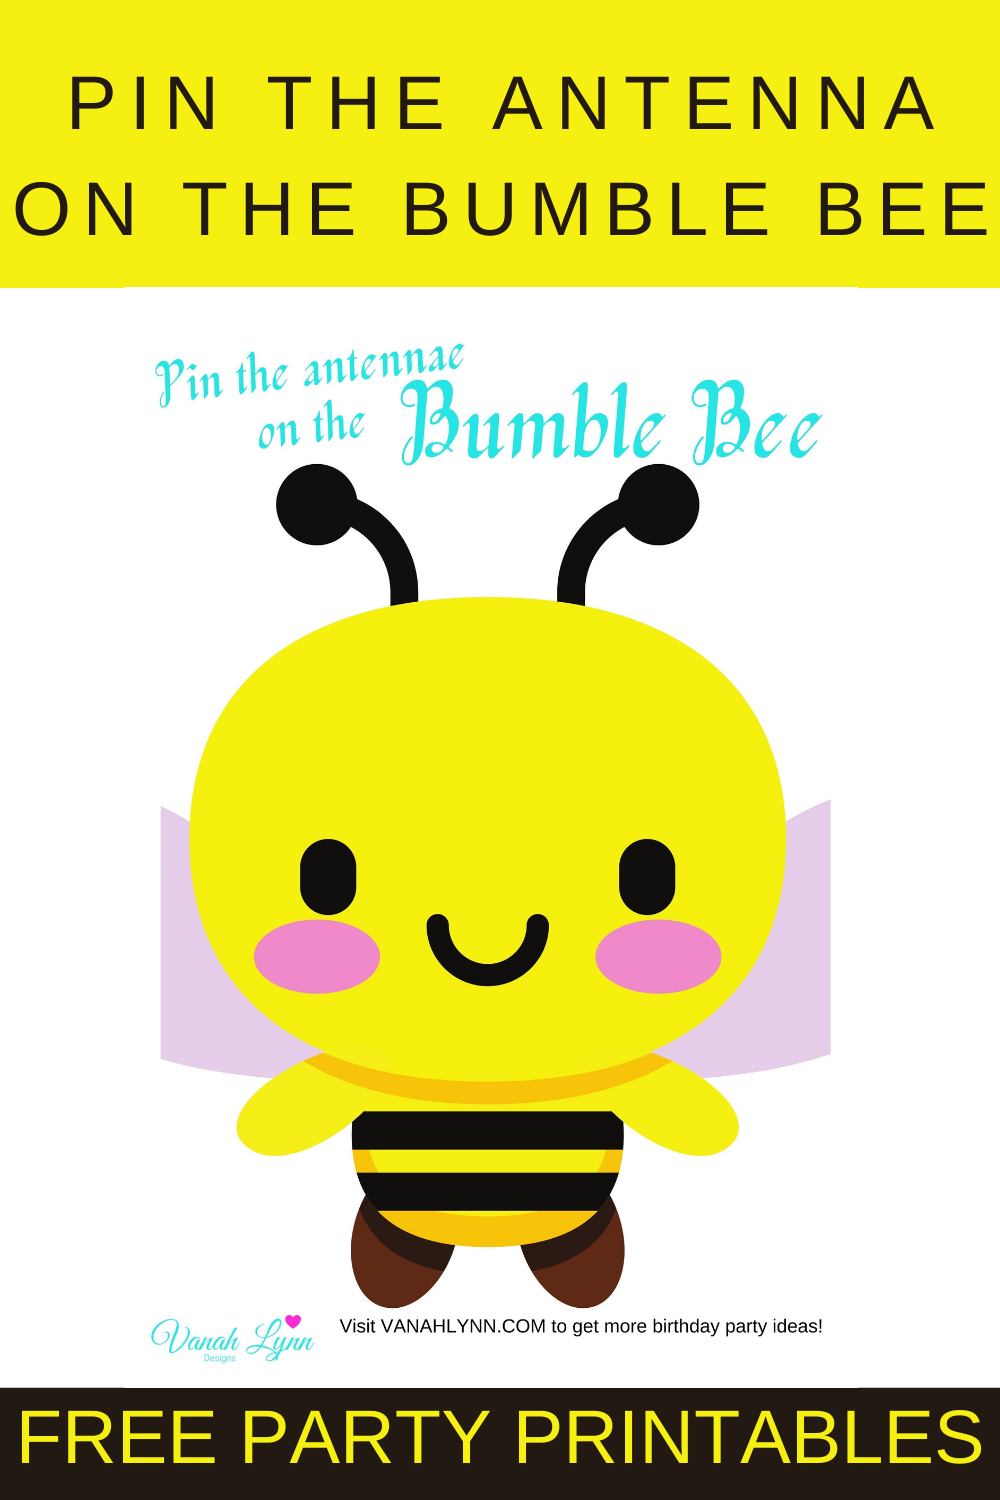 bumble bee free party printables